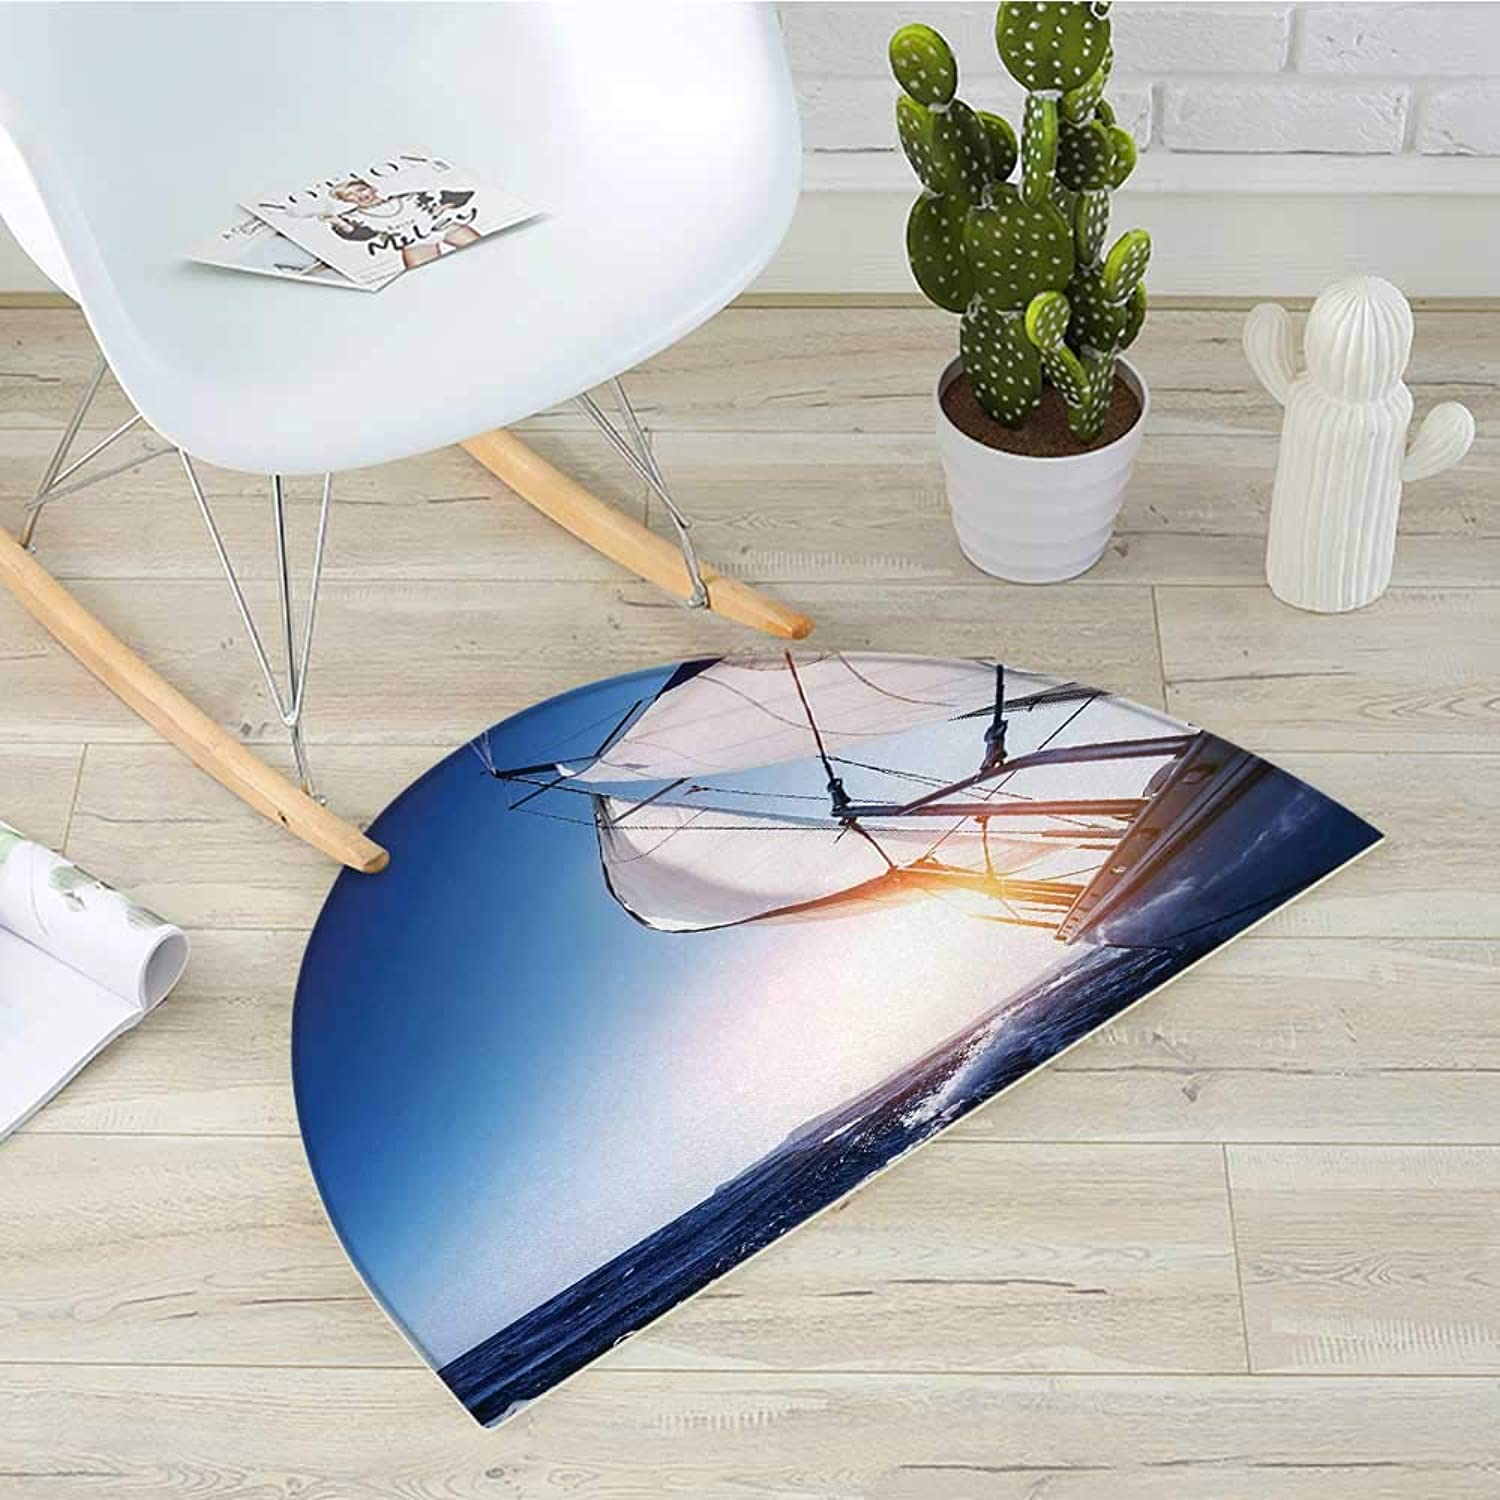 Sailboat Semicircular CushionSail Boat in Action Summer Adventure Water Transport Sunset Light Travel Entry Door Mat H 31.5  xD 47.2  White Dark bluee